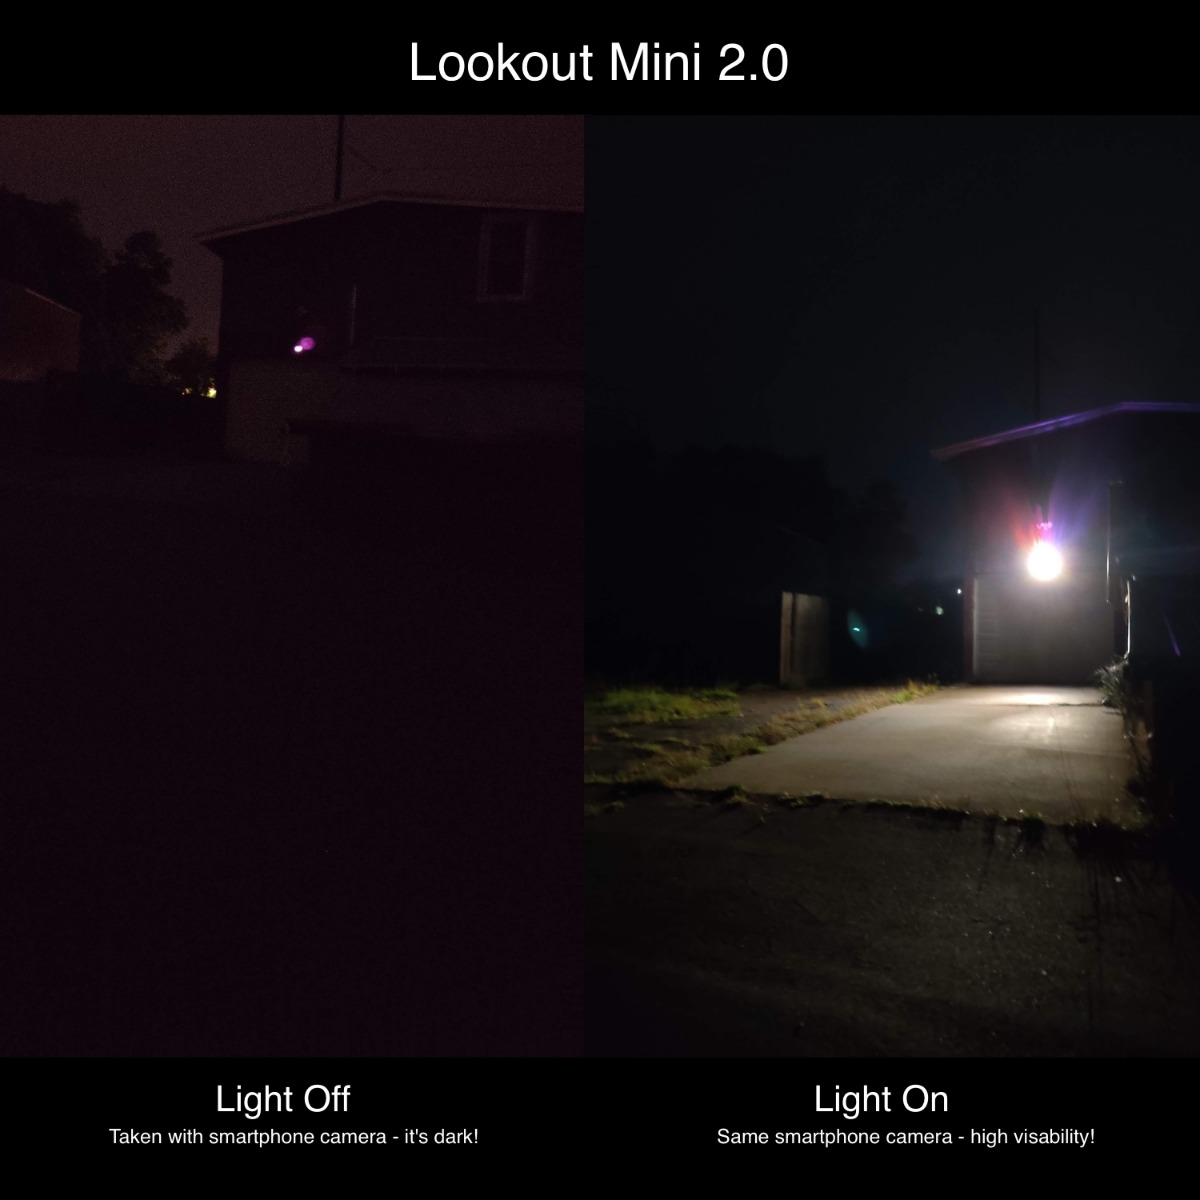 The Lookout 2.0 Mini Light Edition - Mini PTZ with 4x zoom and active deterrence